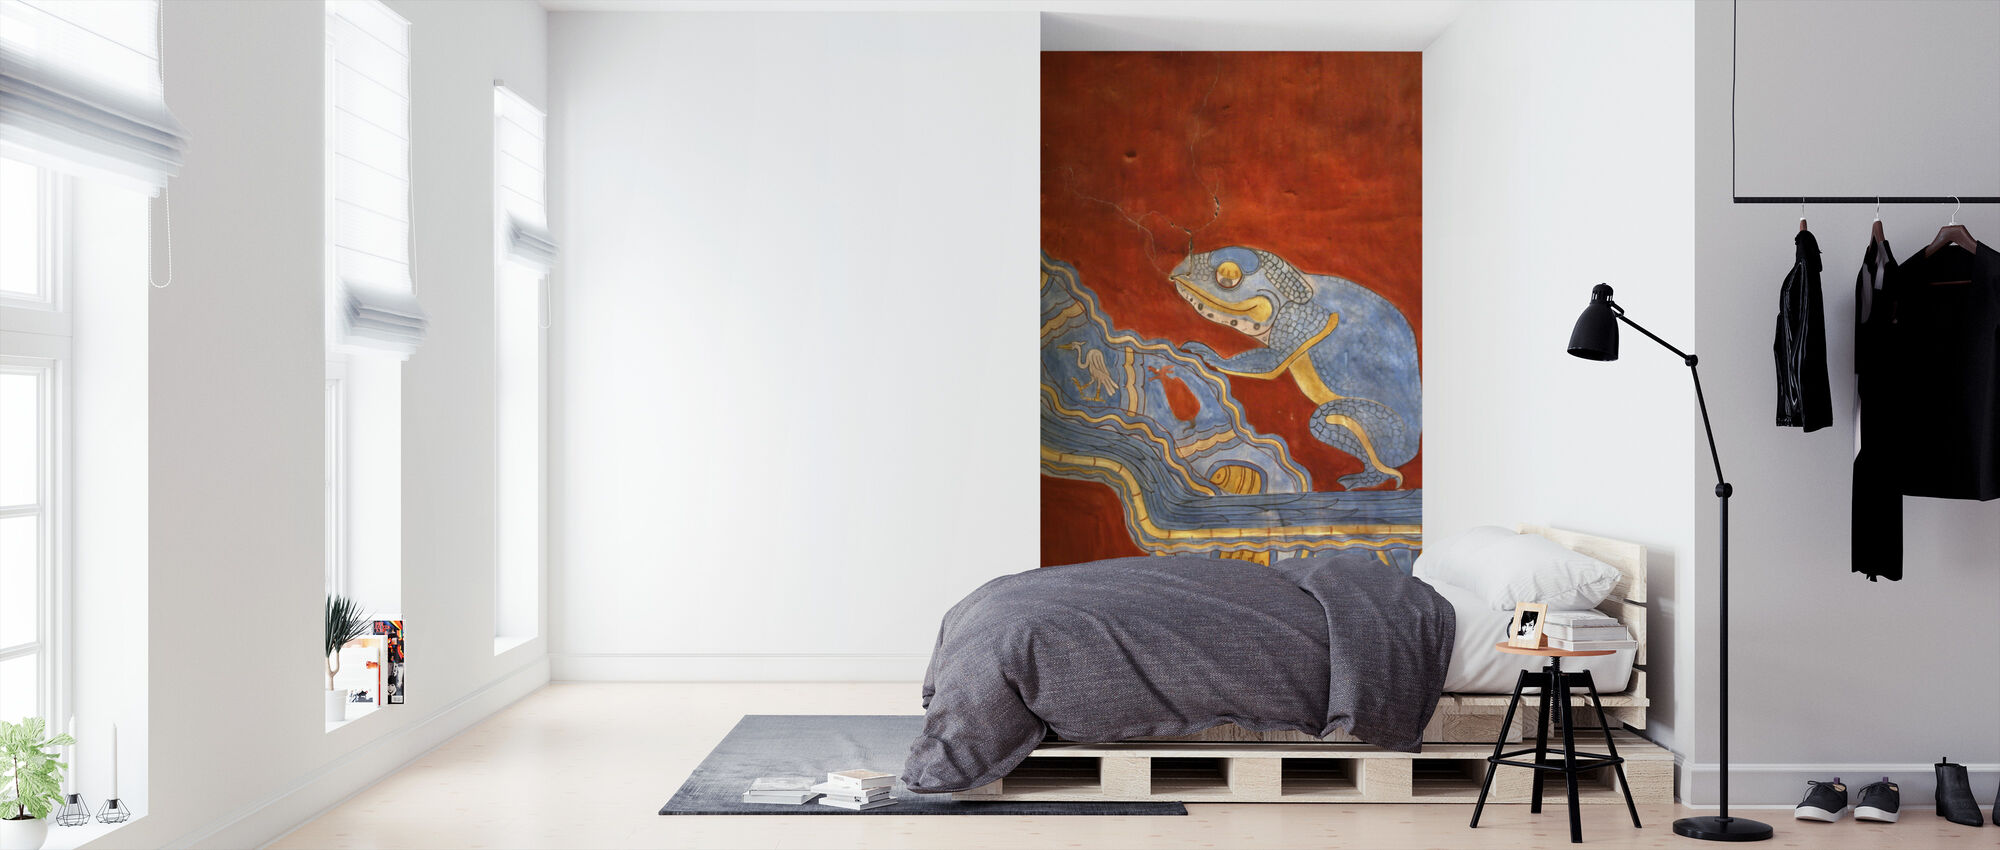 Mornings in Mexico – D HLawrence - Wallpaper - Bedroom